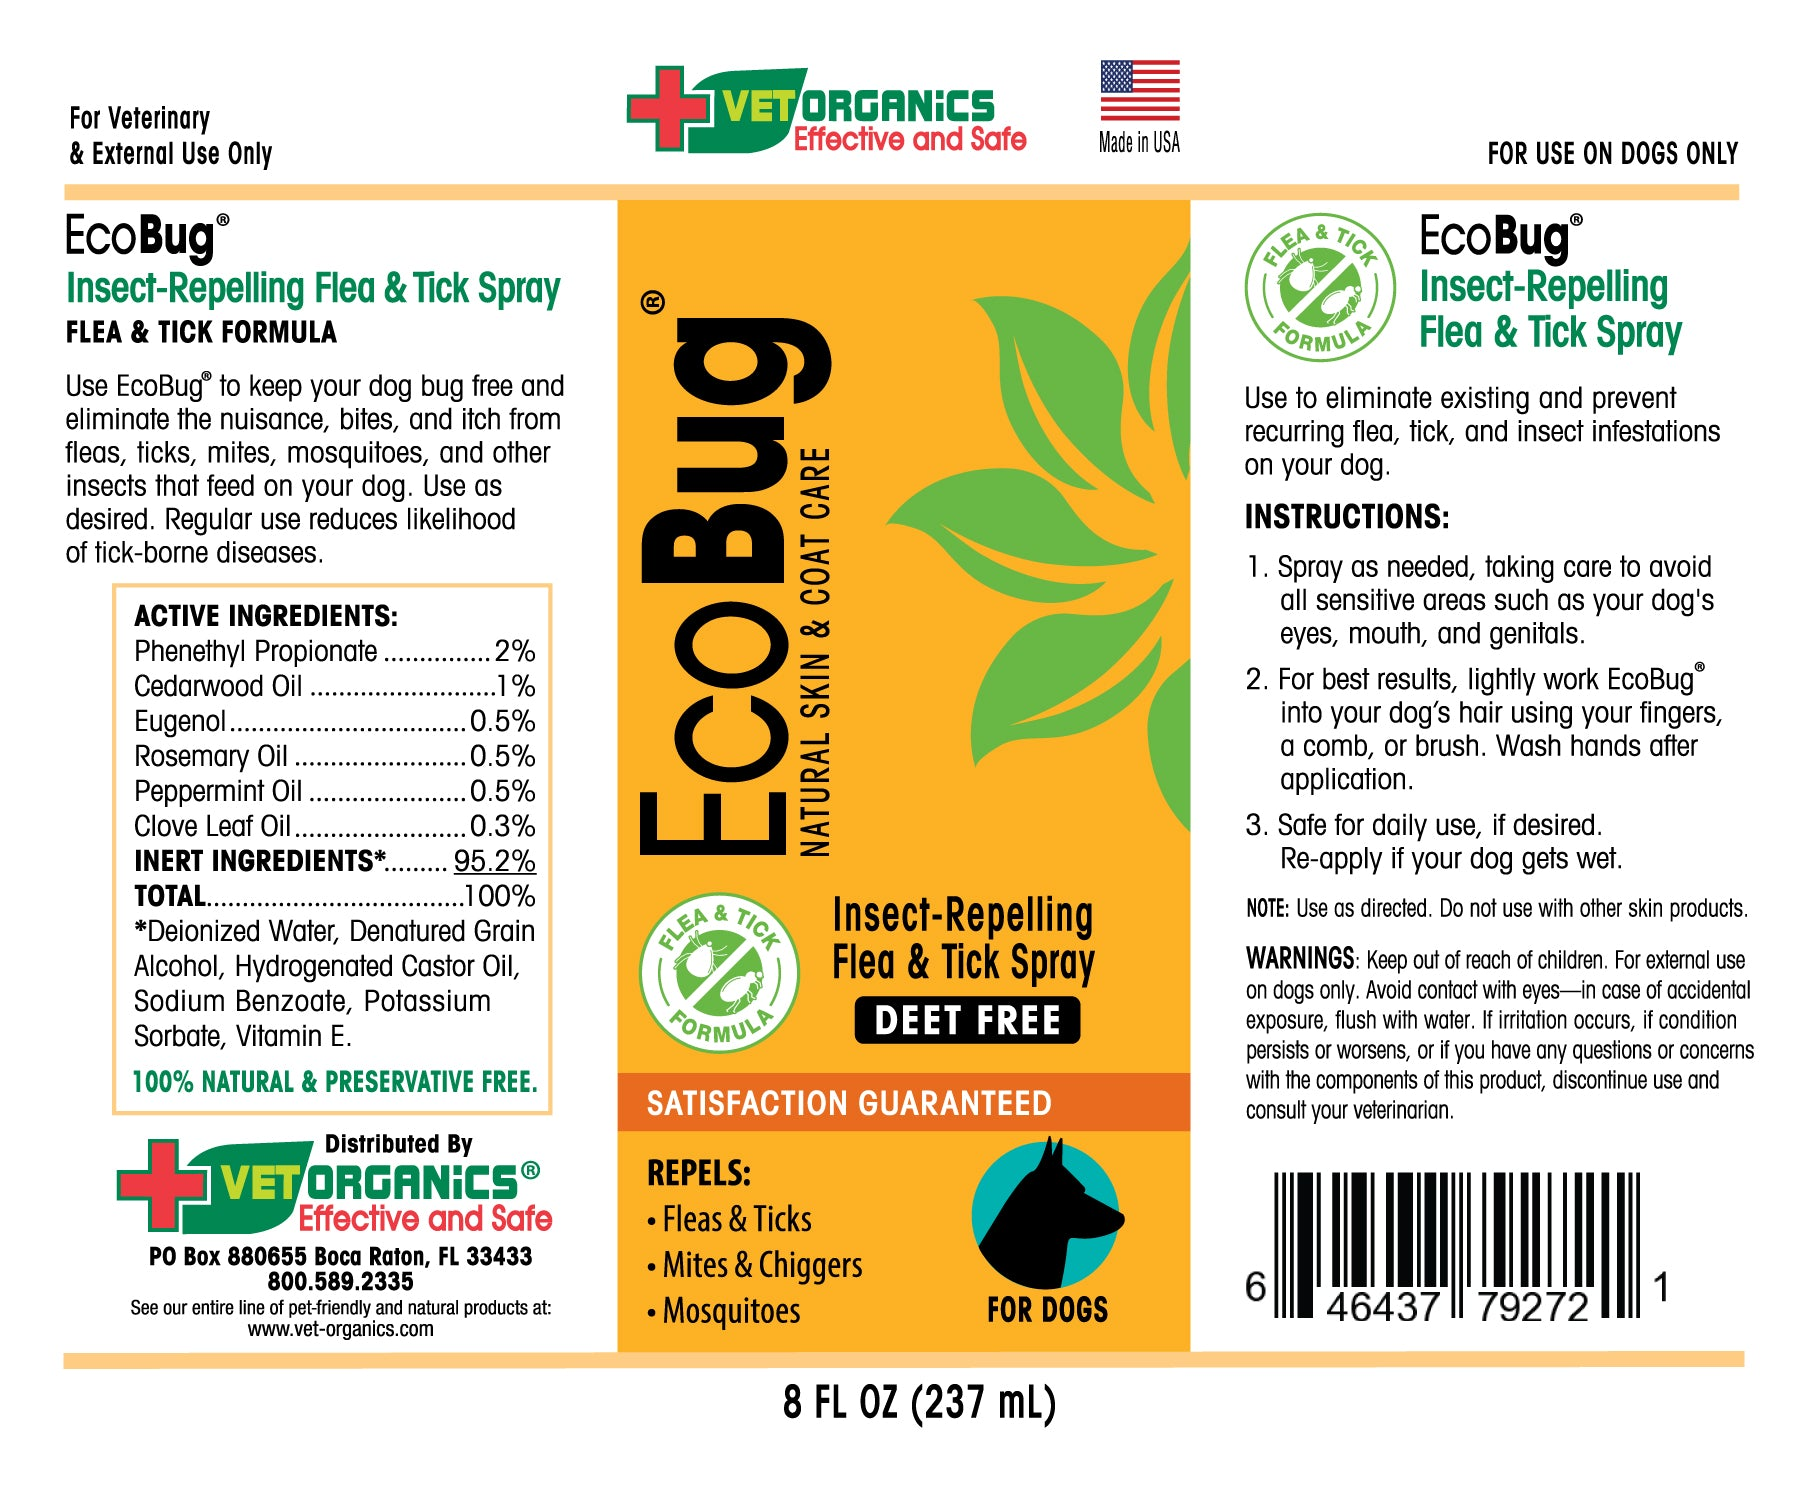 EcoBug® Insect-Repelling Flea & Tick Spray for Dogs – Vet Organics